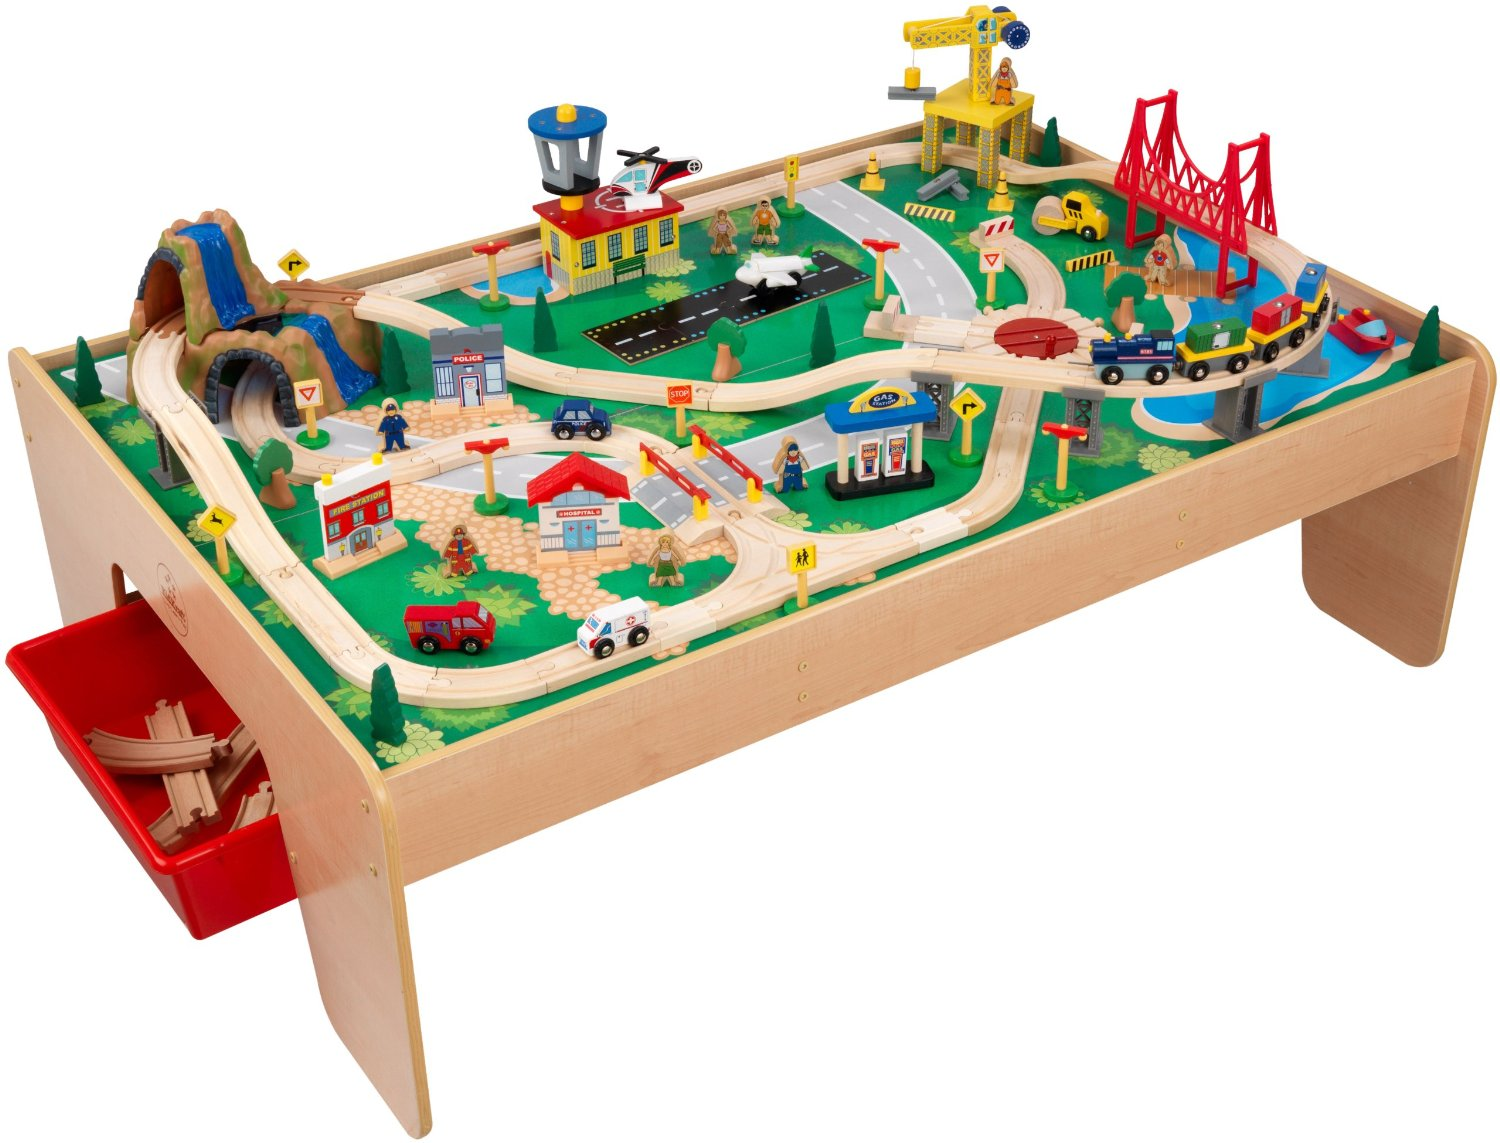 Best Train Sets For Kids What Are The Options